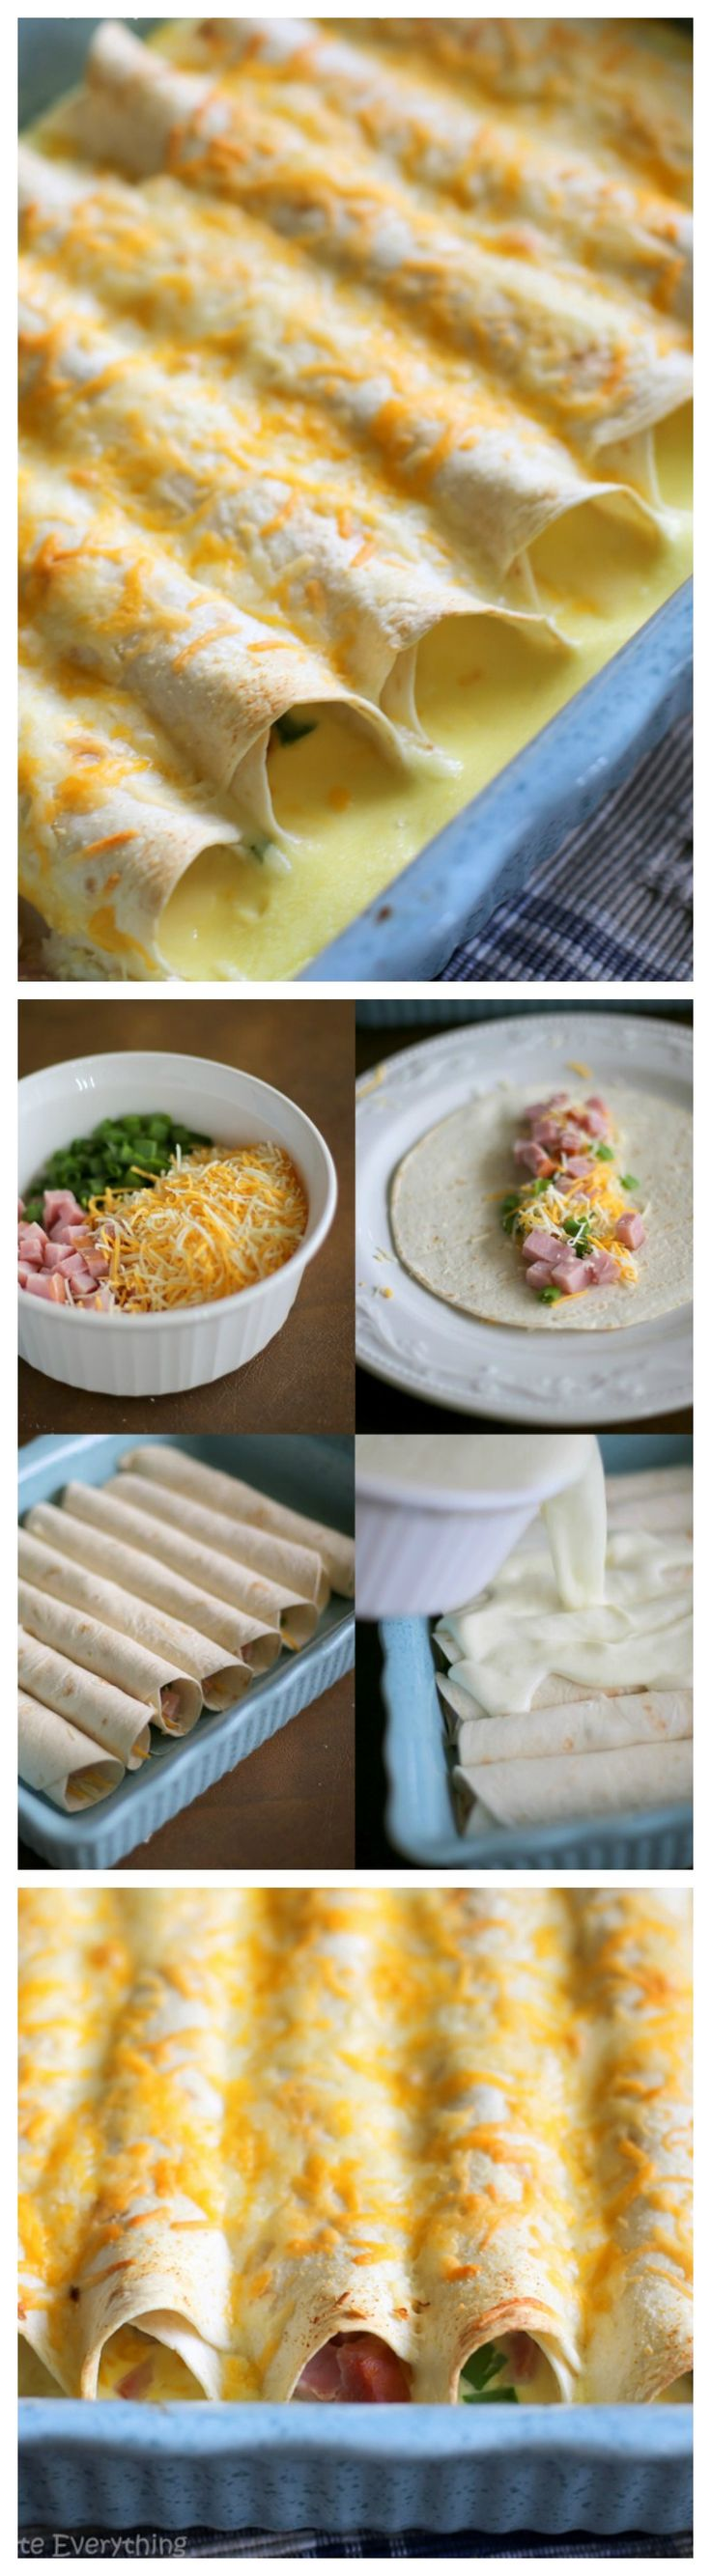 "Breakfast!  --> ""Ham and Cheese Breakfast Enchiladas - prepared the night before and filled with a ham and cheese egg mixture. Great for company! the-girl-who-ate-everything.com"""